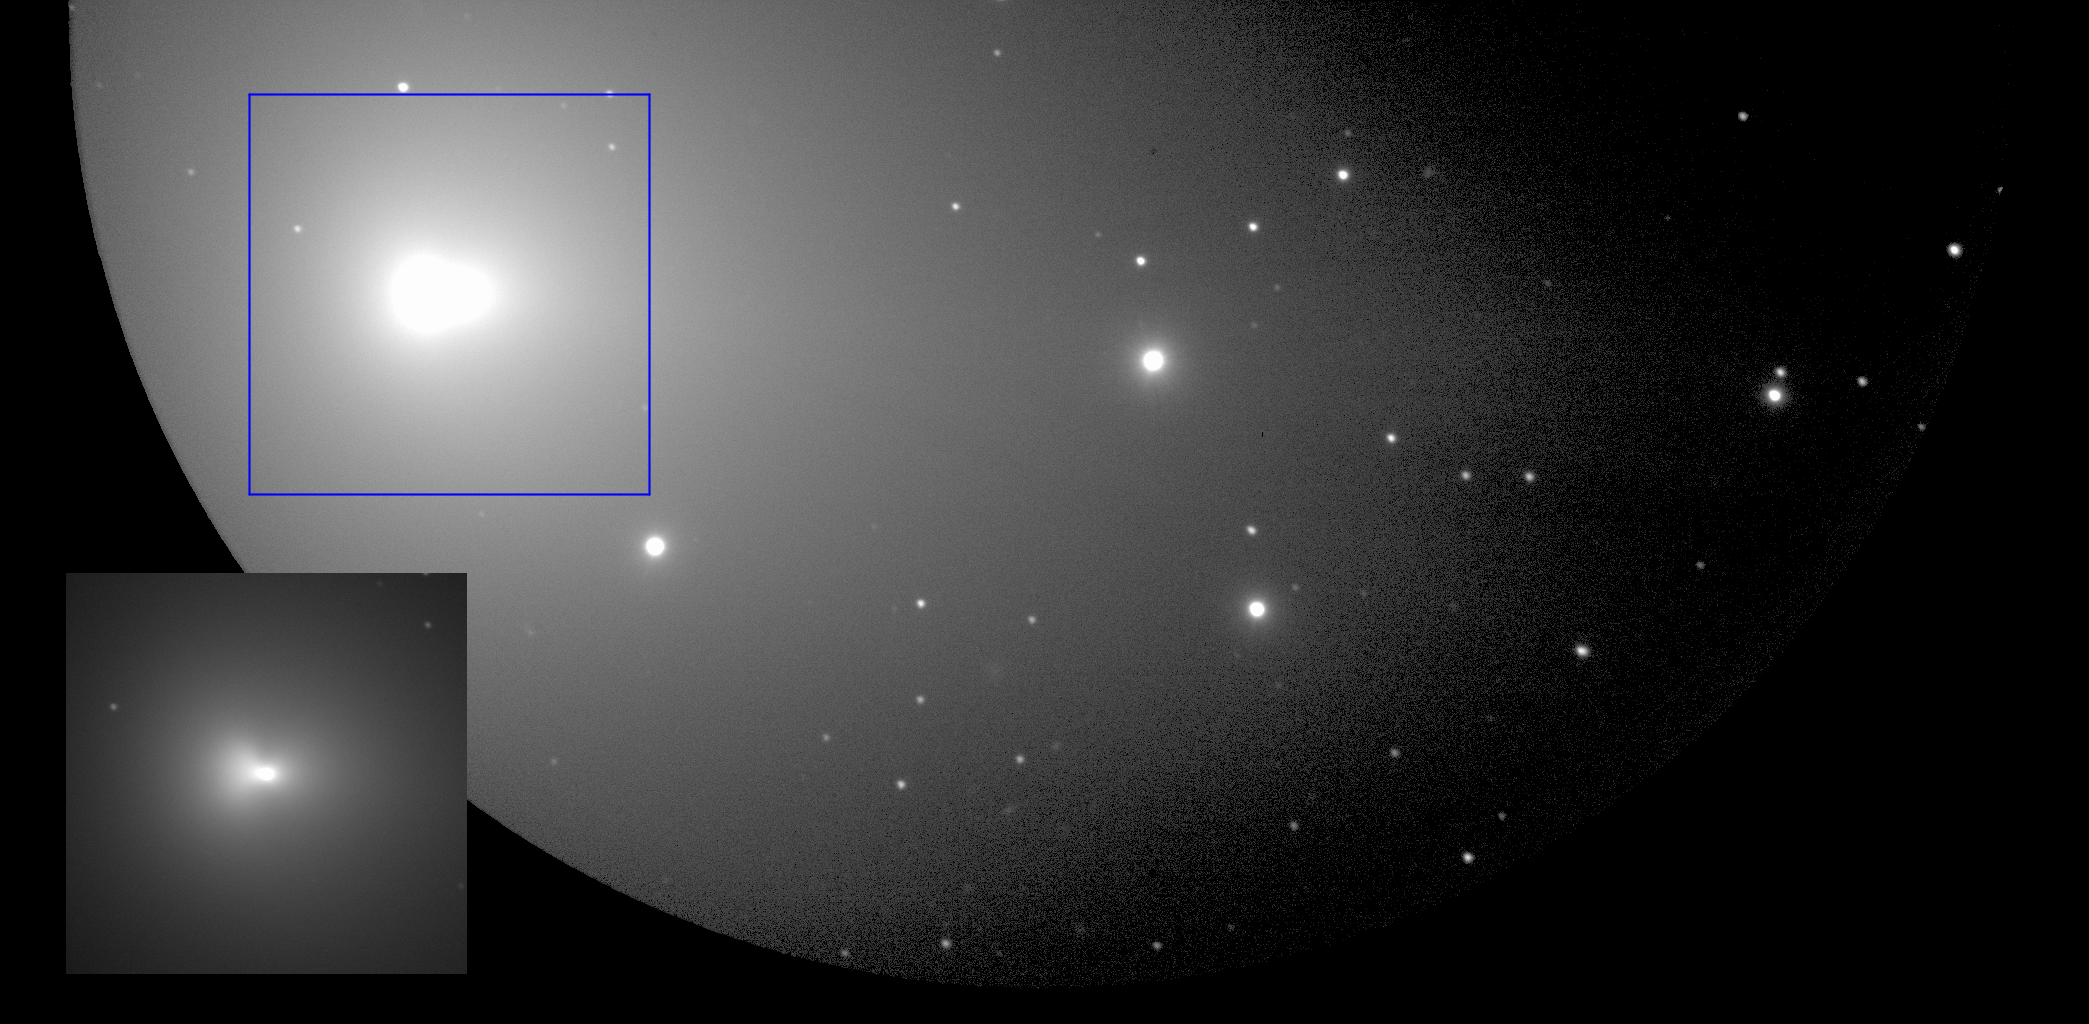 Subaru Telescope Captures Visible-Light Images of the Comets ISON and Lovejoy Figure2